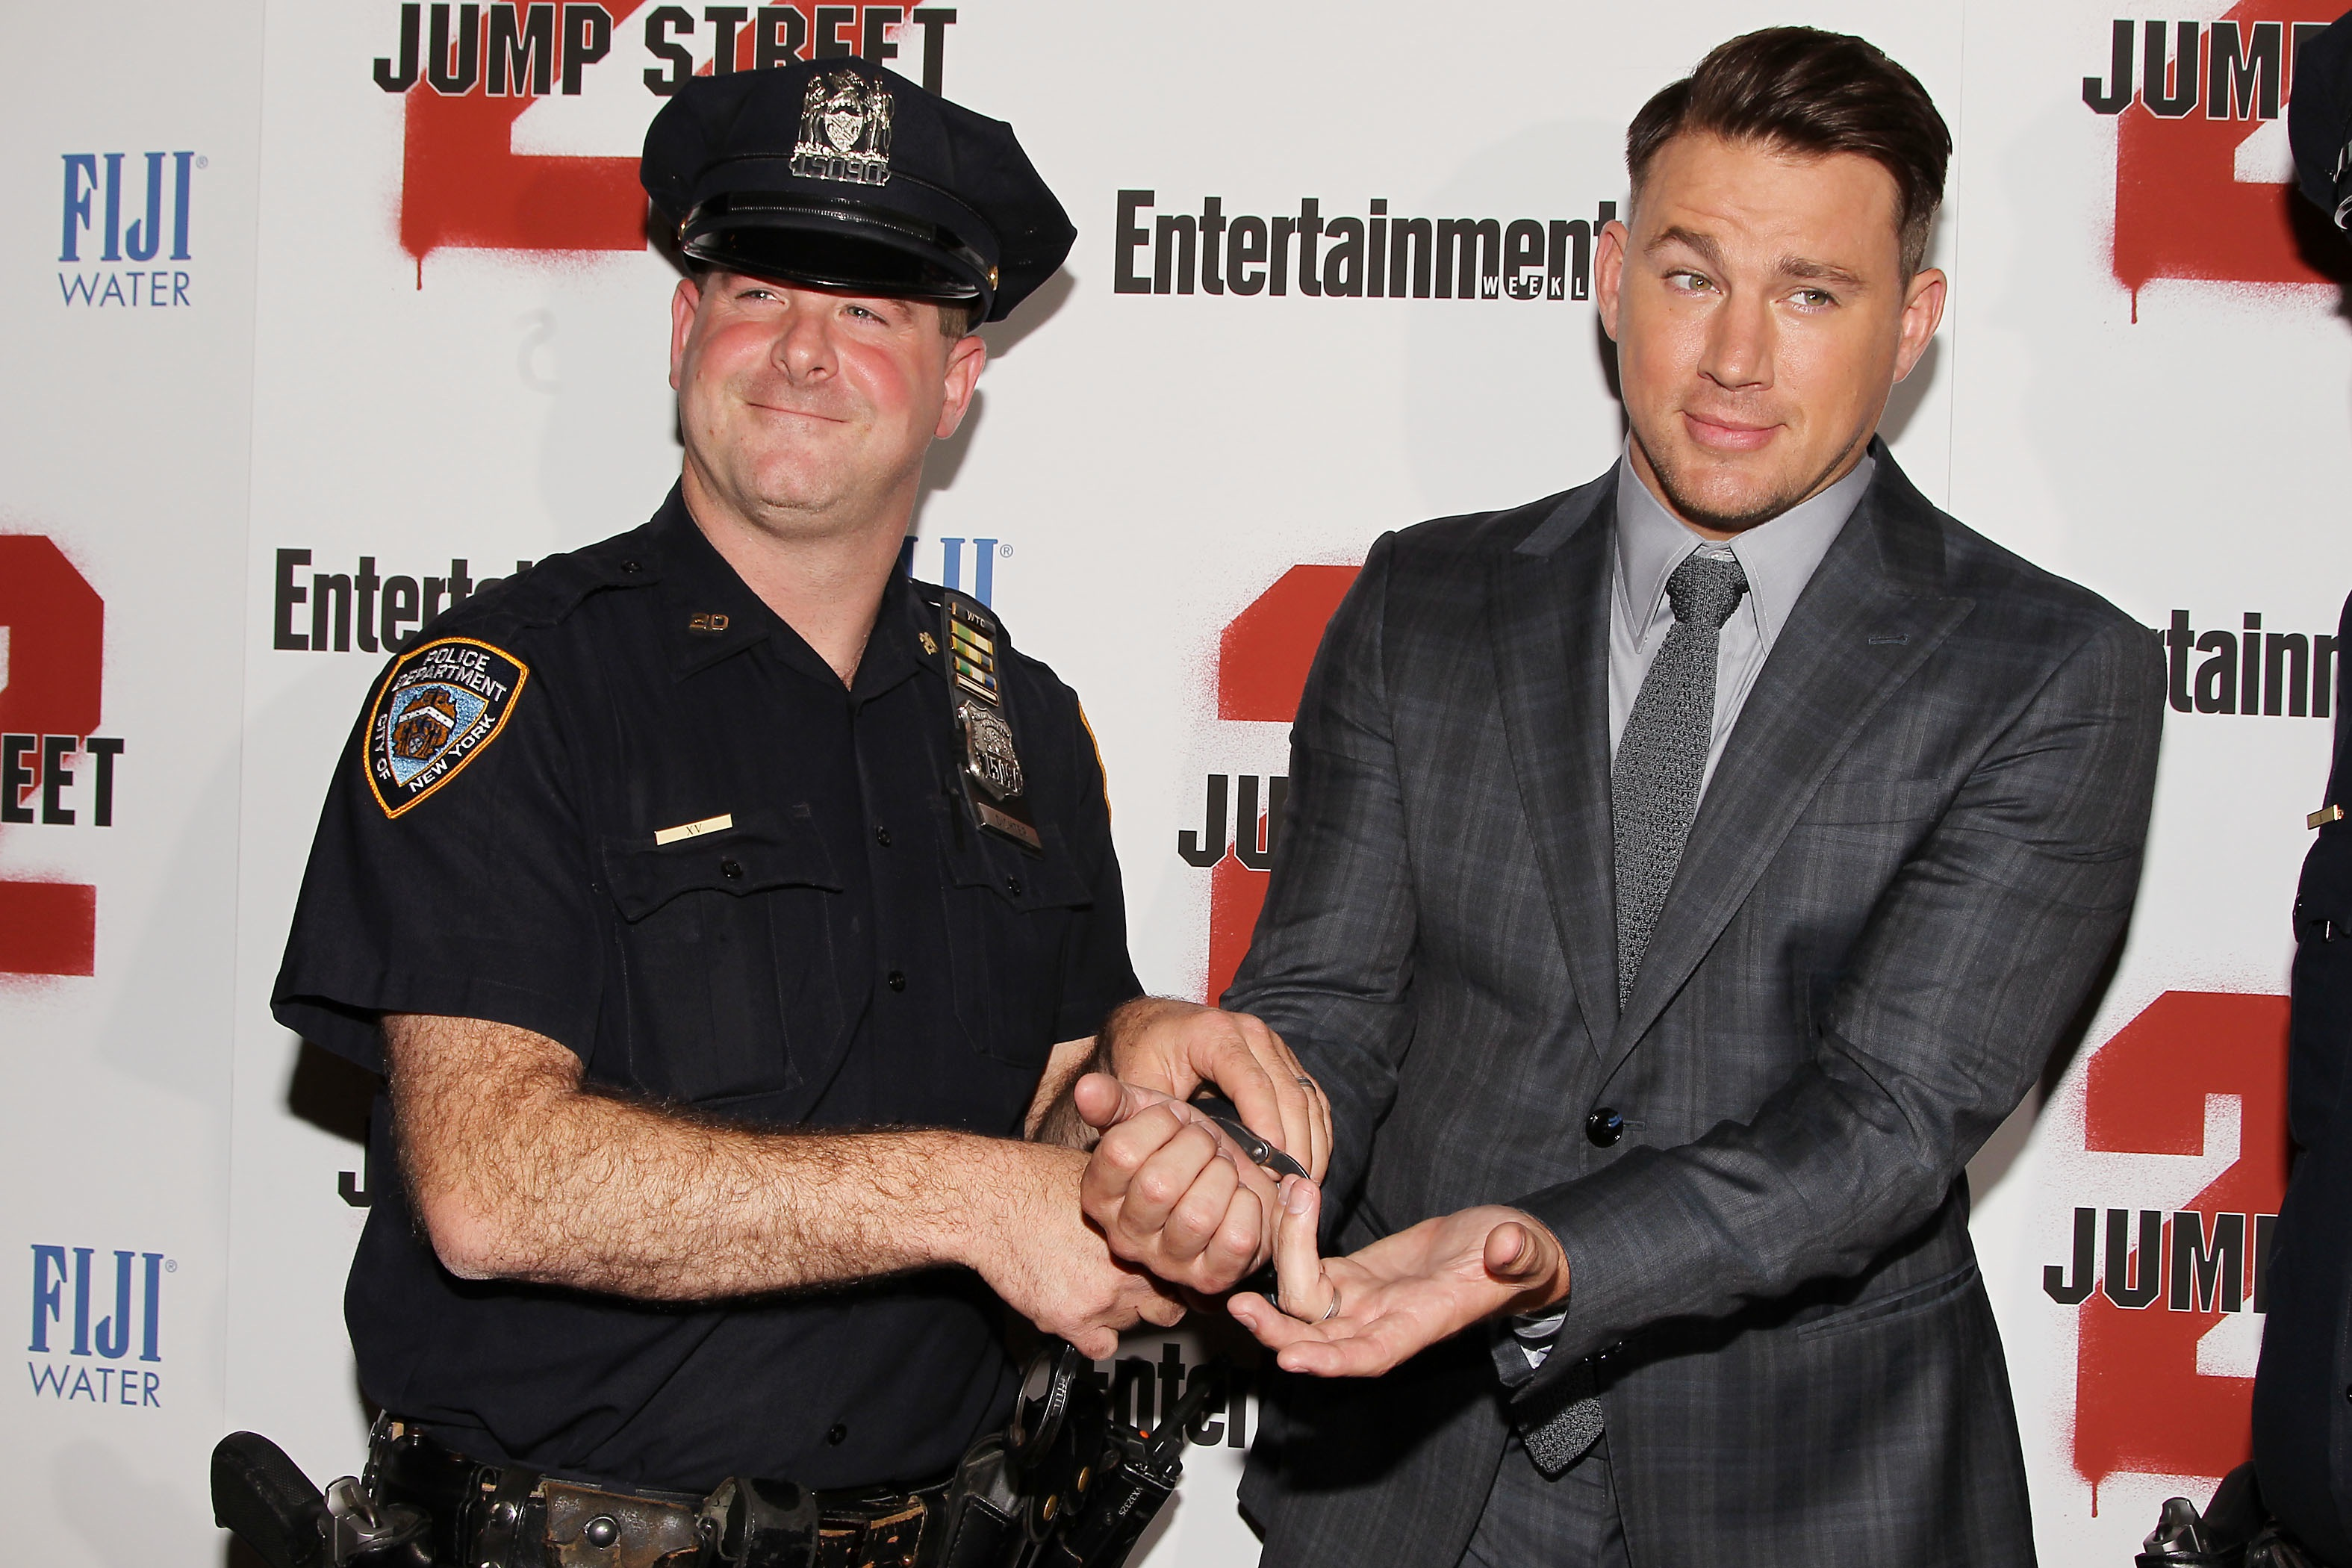 Channing Tatum getting  arrested  at the  Jump Street Movie Premiere